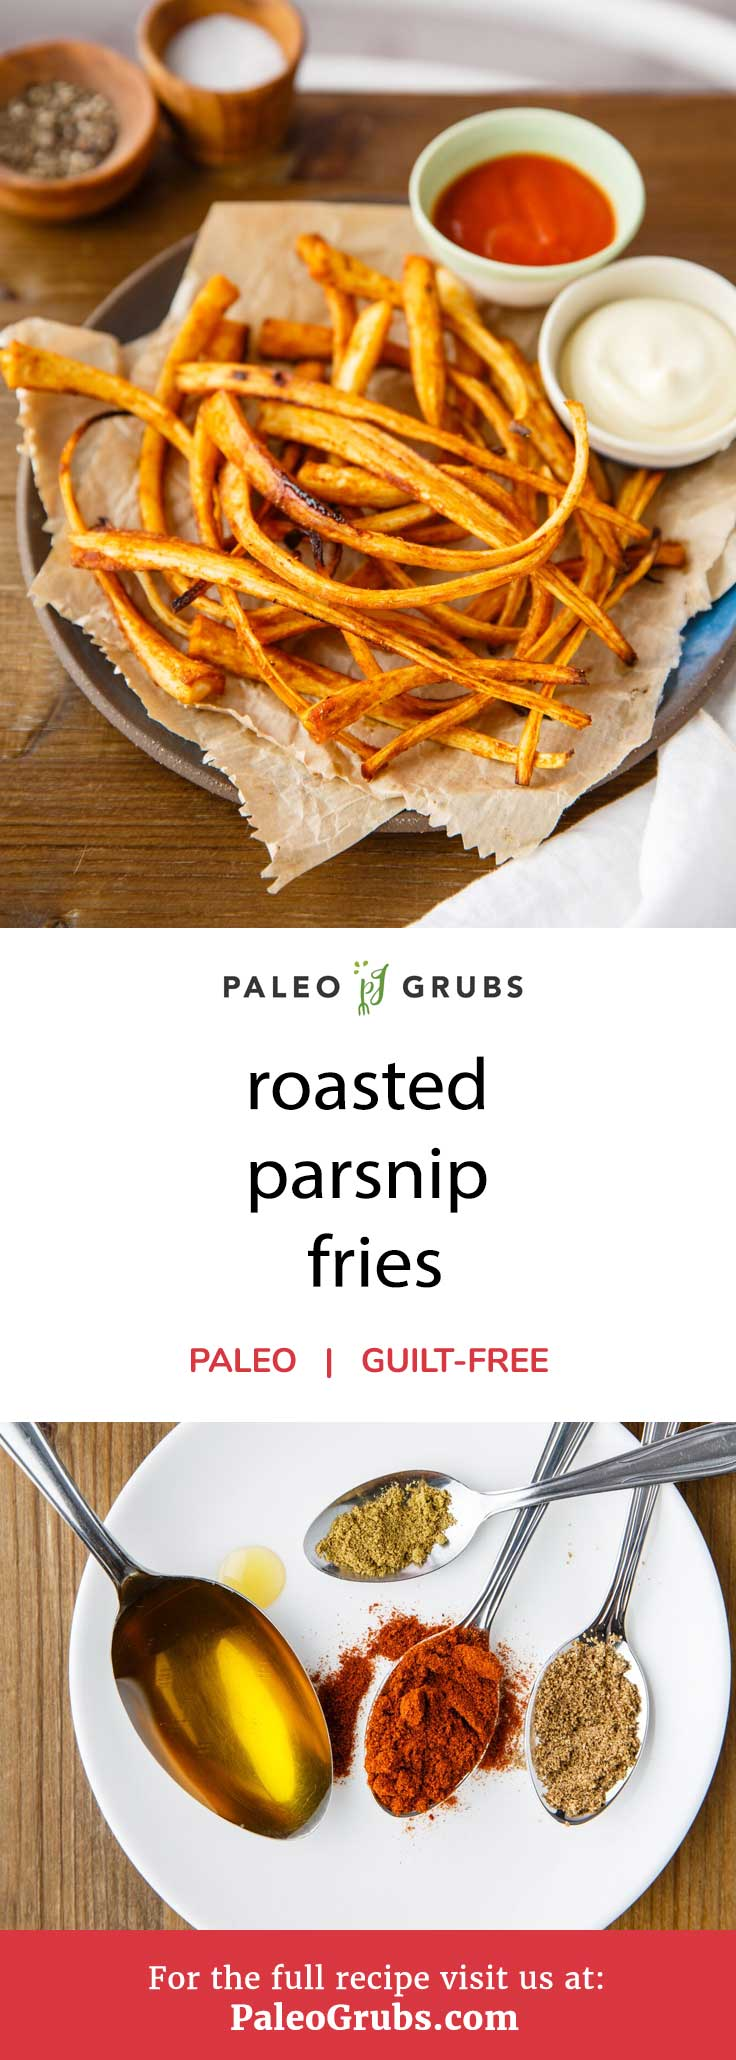 As delicious as French fries are, they're really quite unhealthy due to the large amount of trans fats they are usually cooked in. Additionally, French fries are typically made with white potatoes, which is off-limits to paleo dieters. That's not the case with these roasted parsnip fries, however. This recipe makes some delicious paleo-approved fries that are highly nutritious and packed with flavor.